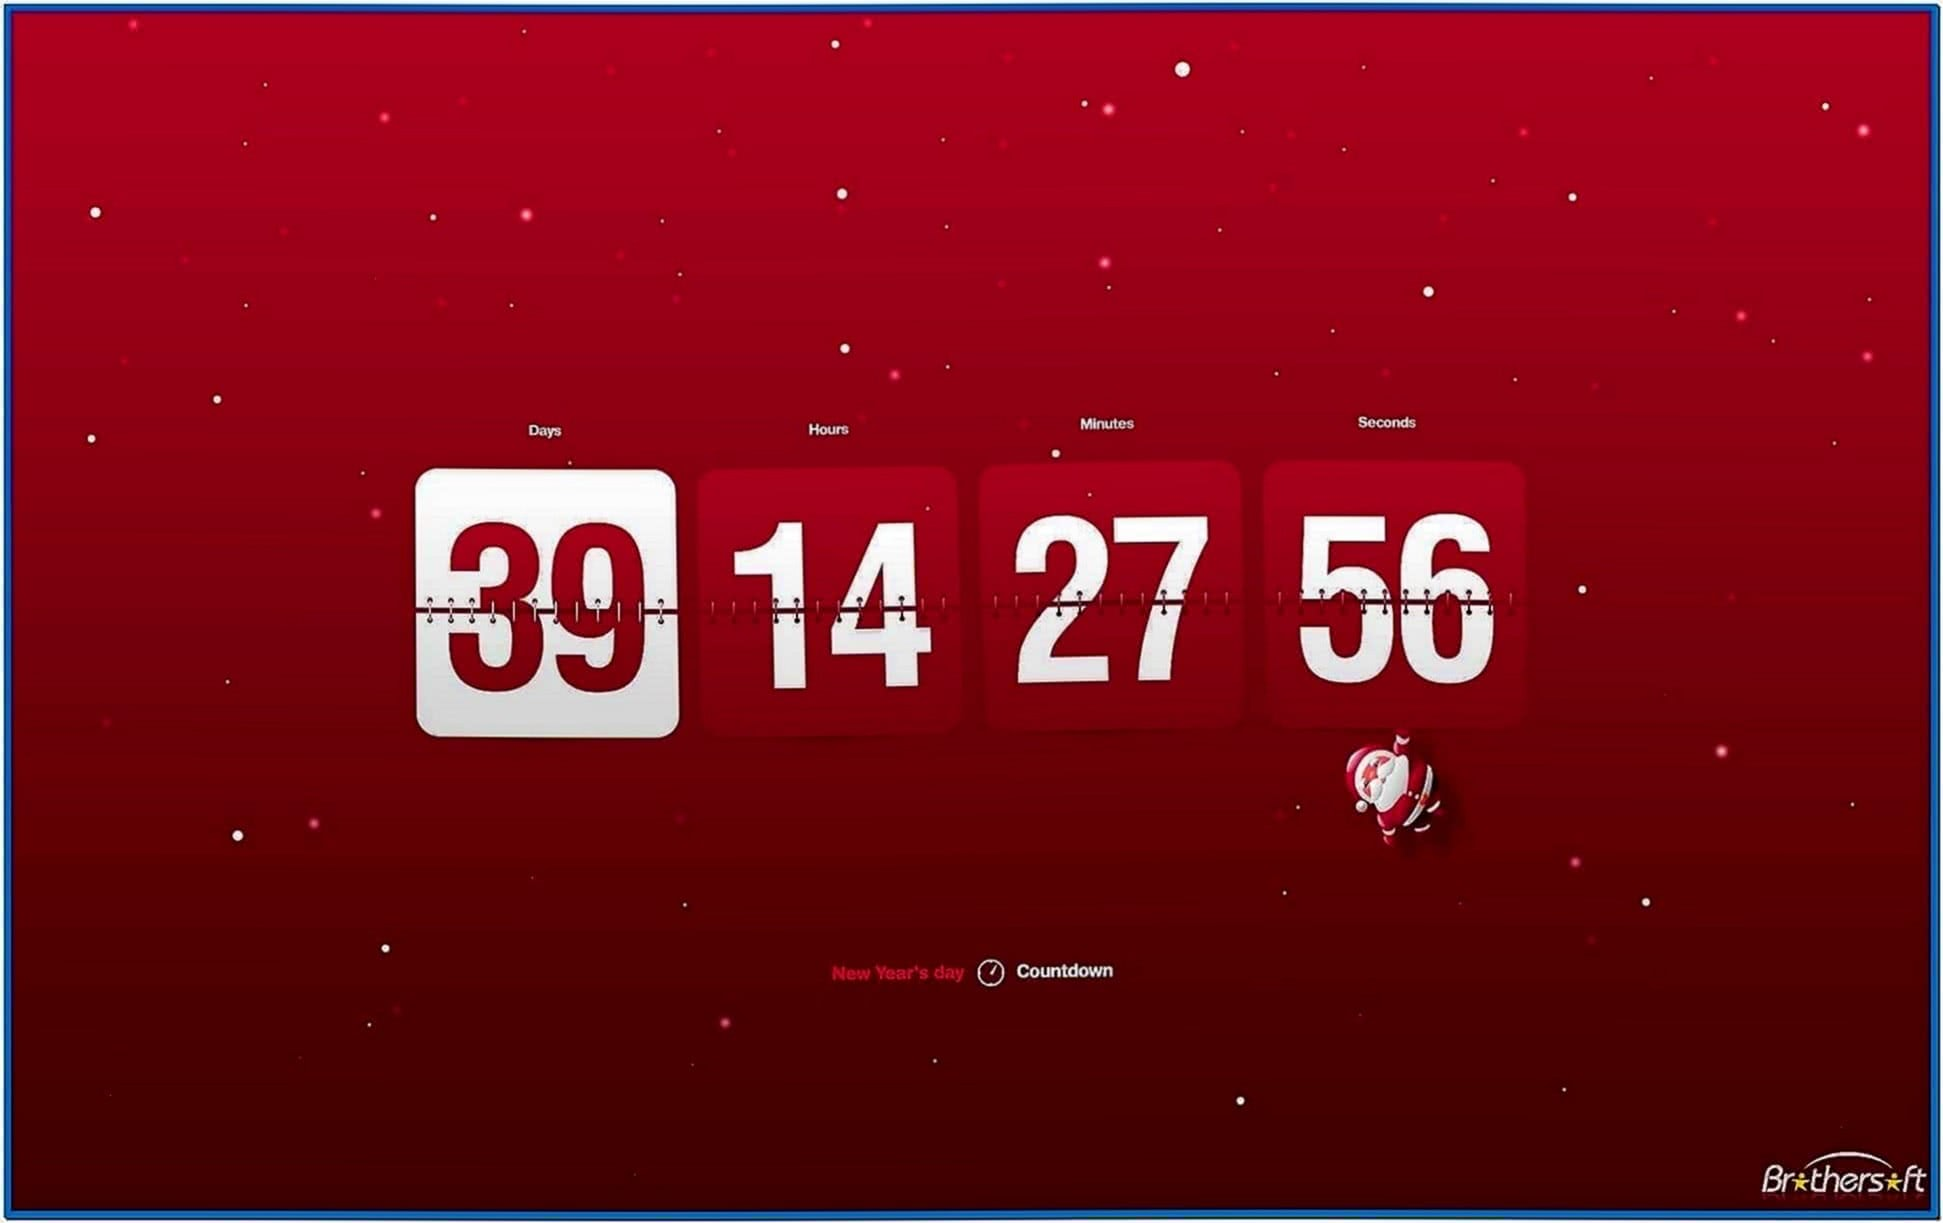 downloadable count timer windows 7 countdown timer screensaver free downloadable